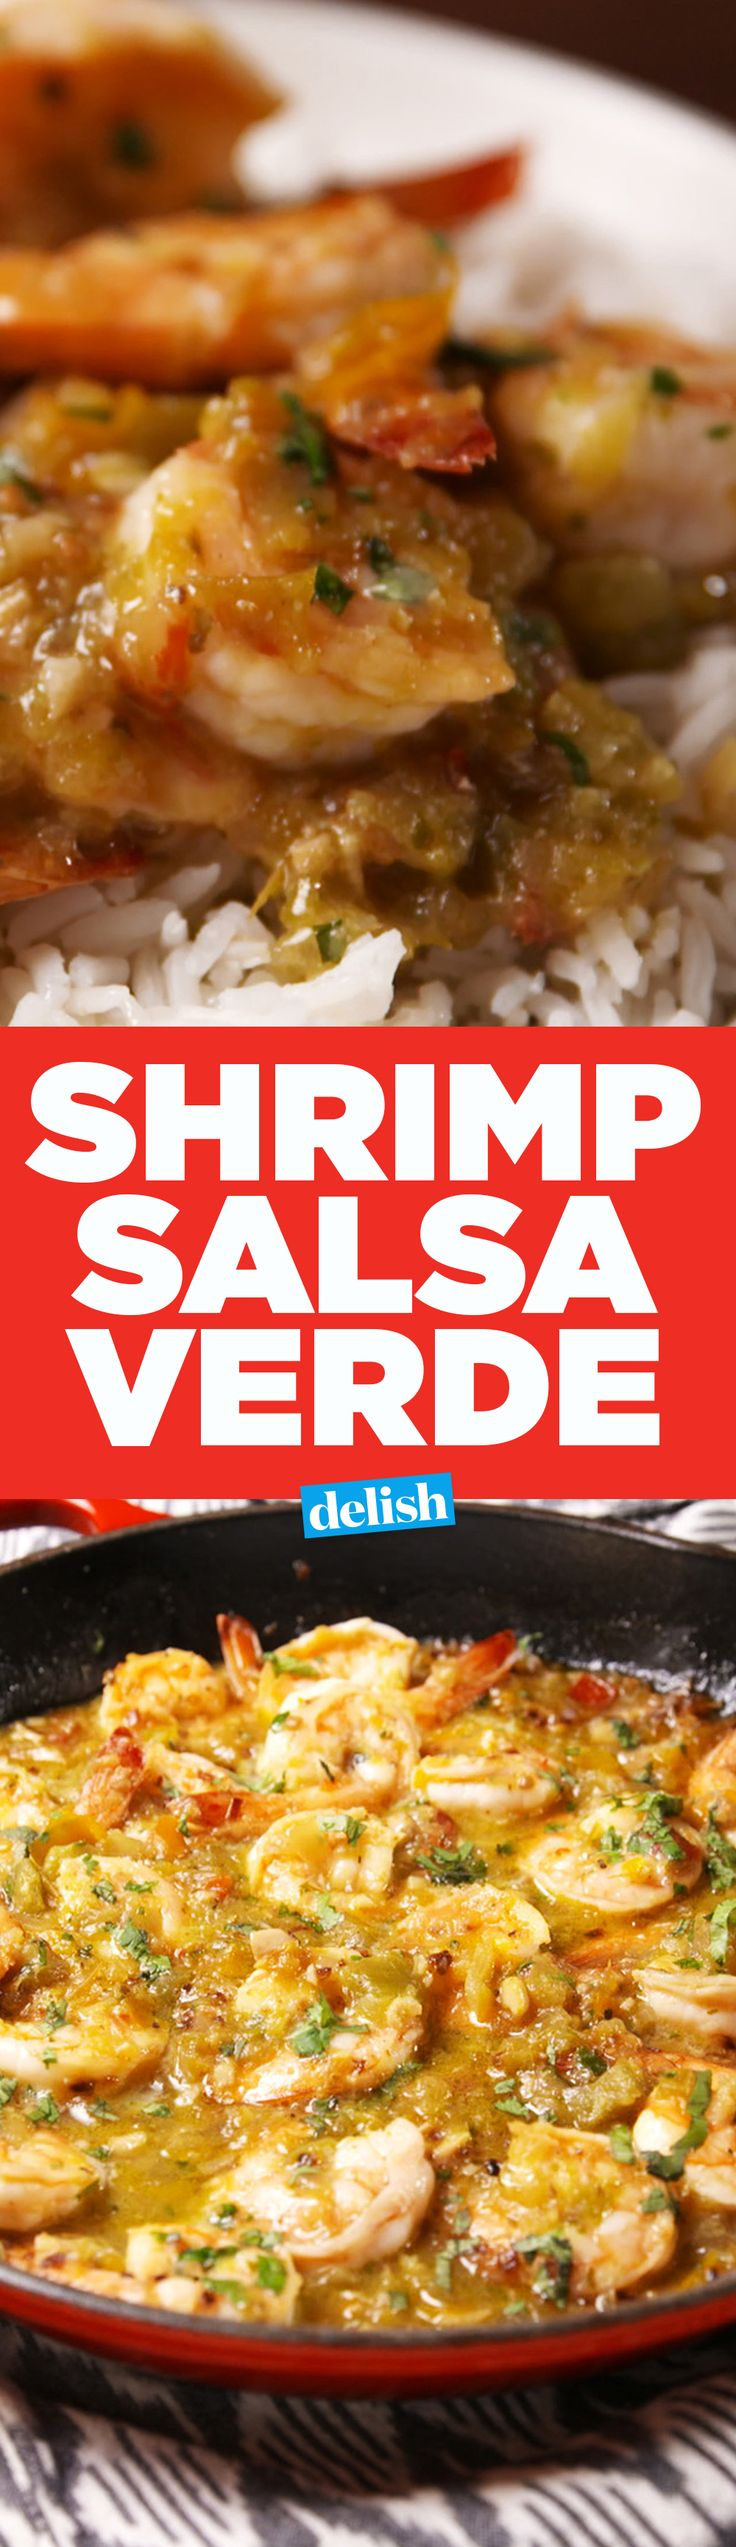 This Salsa Verde Shrimp is one of the most delish dinners to come out of the Delish kitchen. Get the recipe on Delish.com.